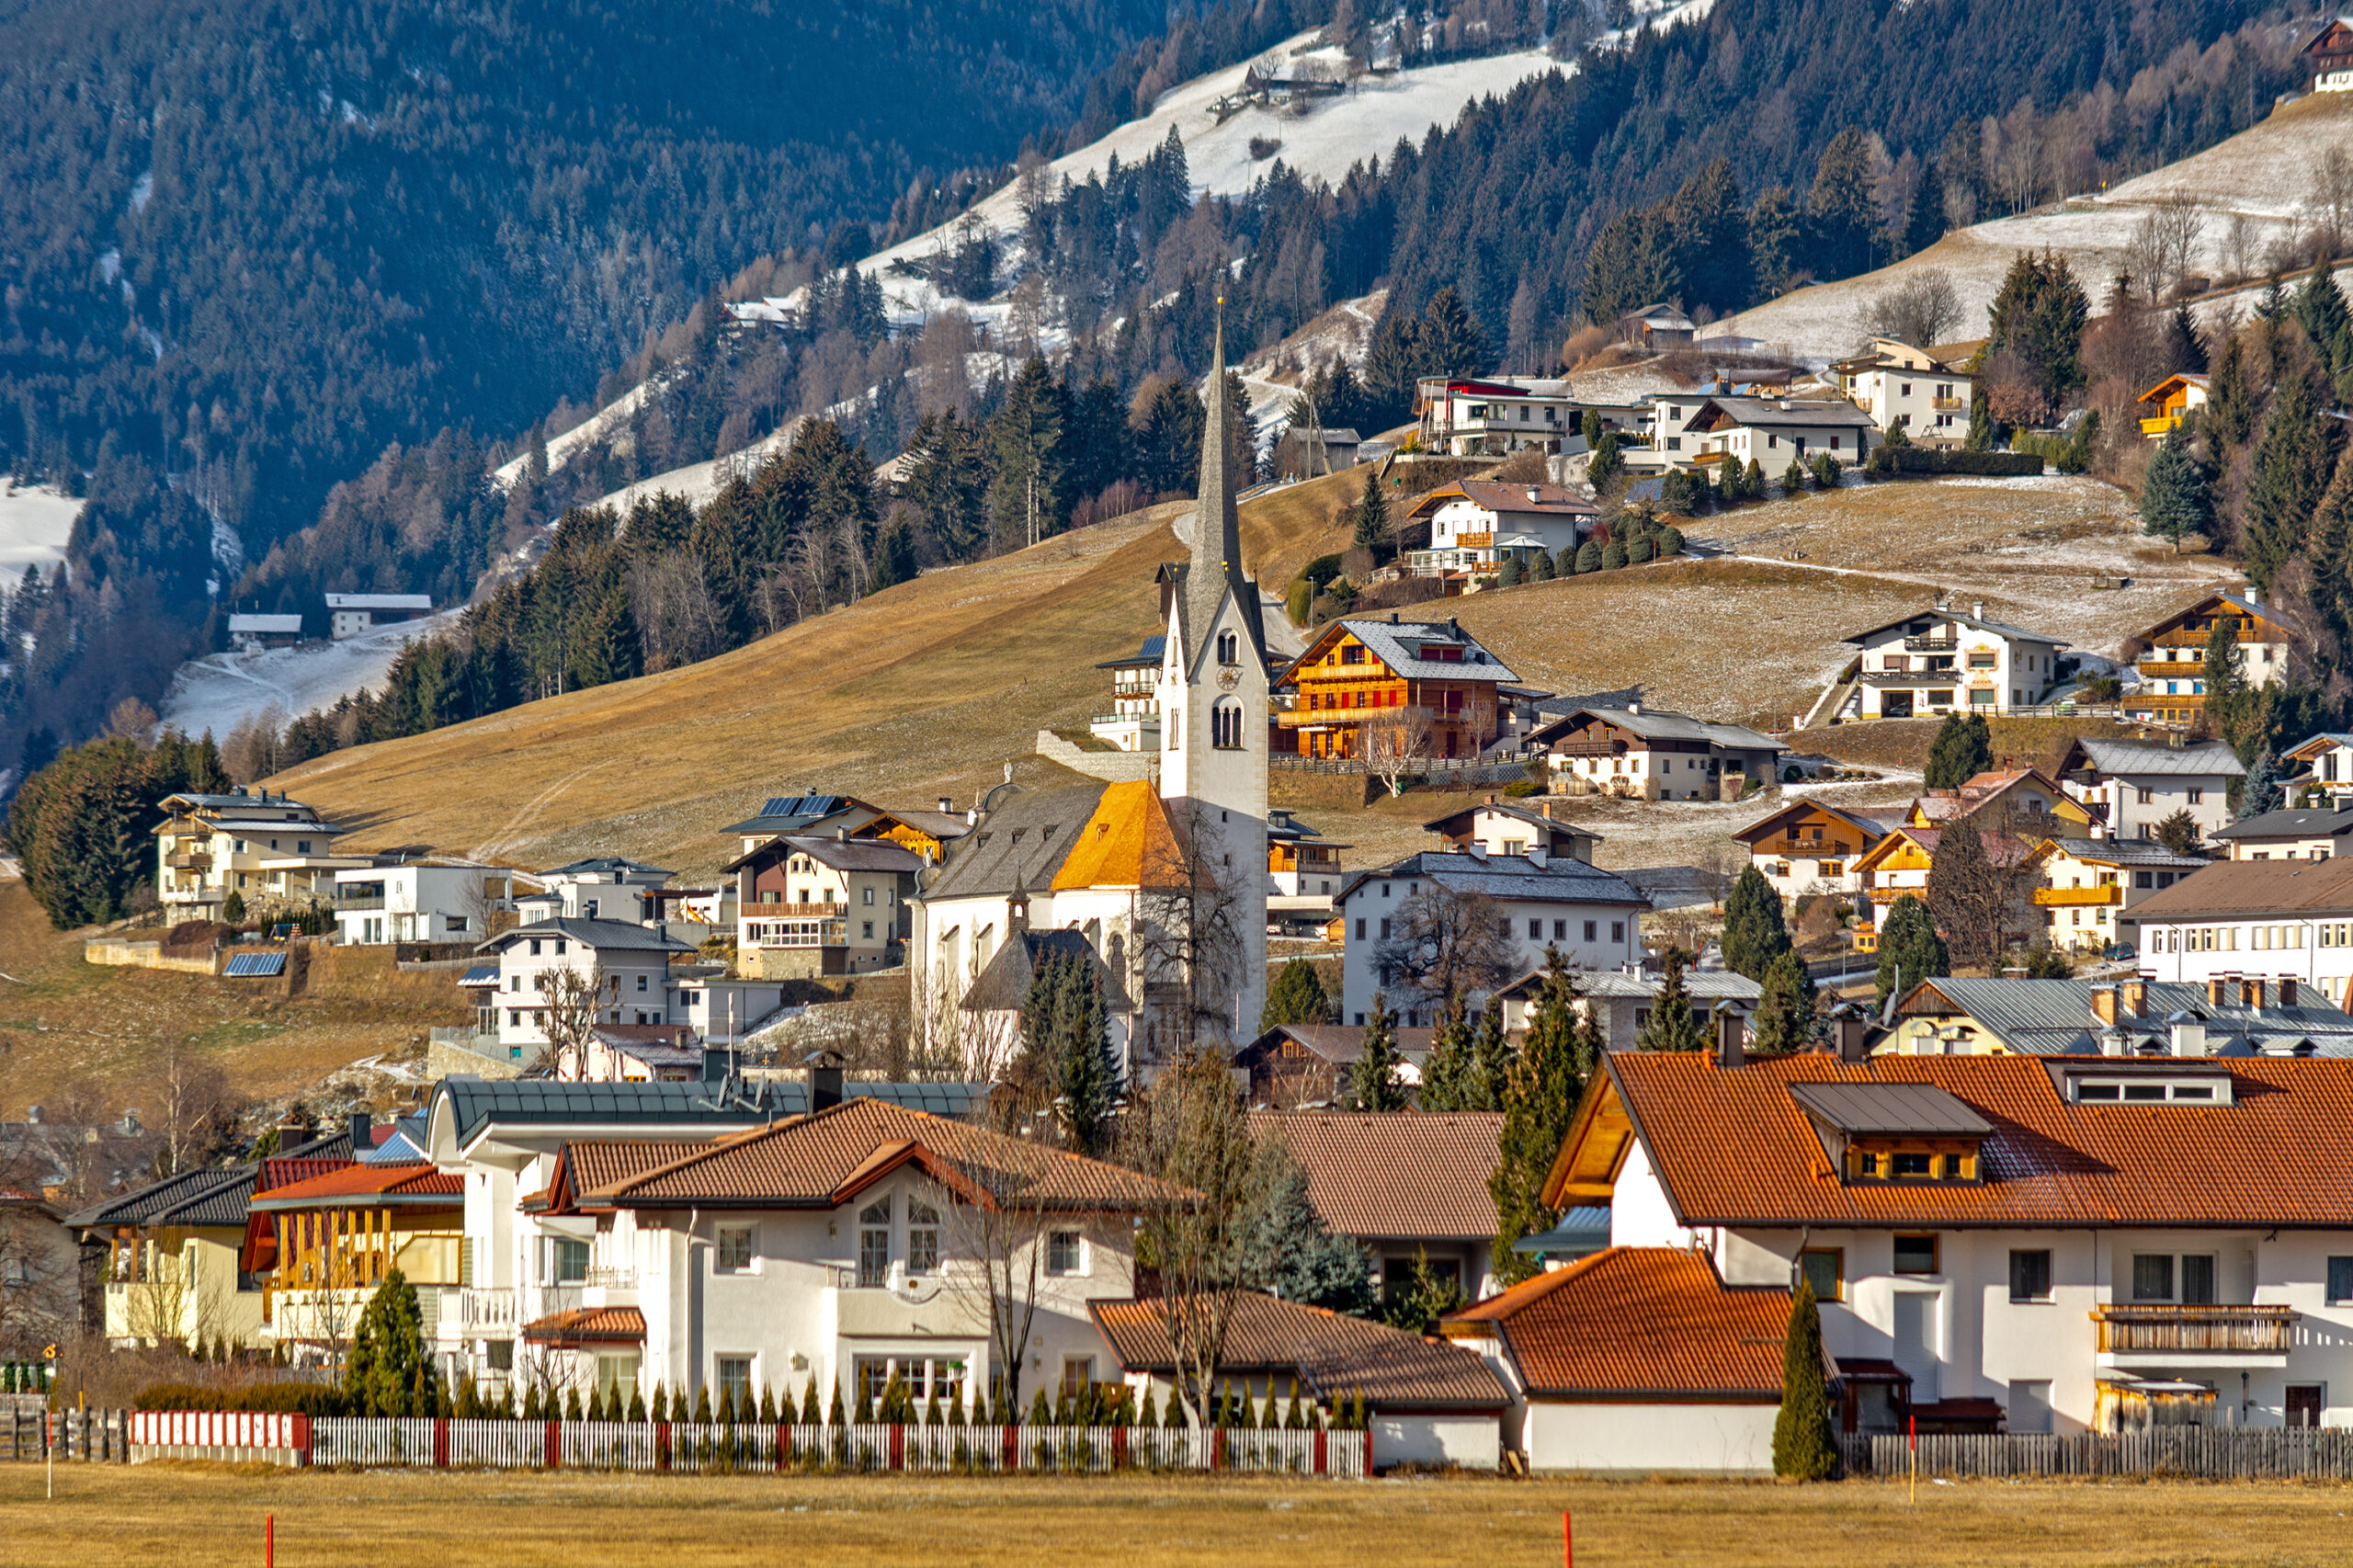 Photo of the small Austrian town Lienz. Homes are scattered at the base of a mountain. A church is seen right in the center of the town. Snowy mountains are in the far background as the elevation increases.